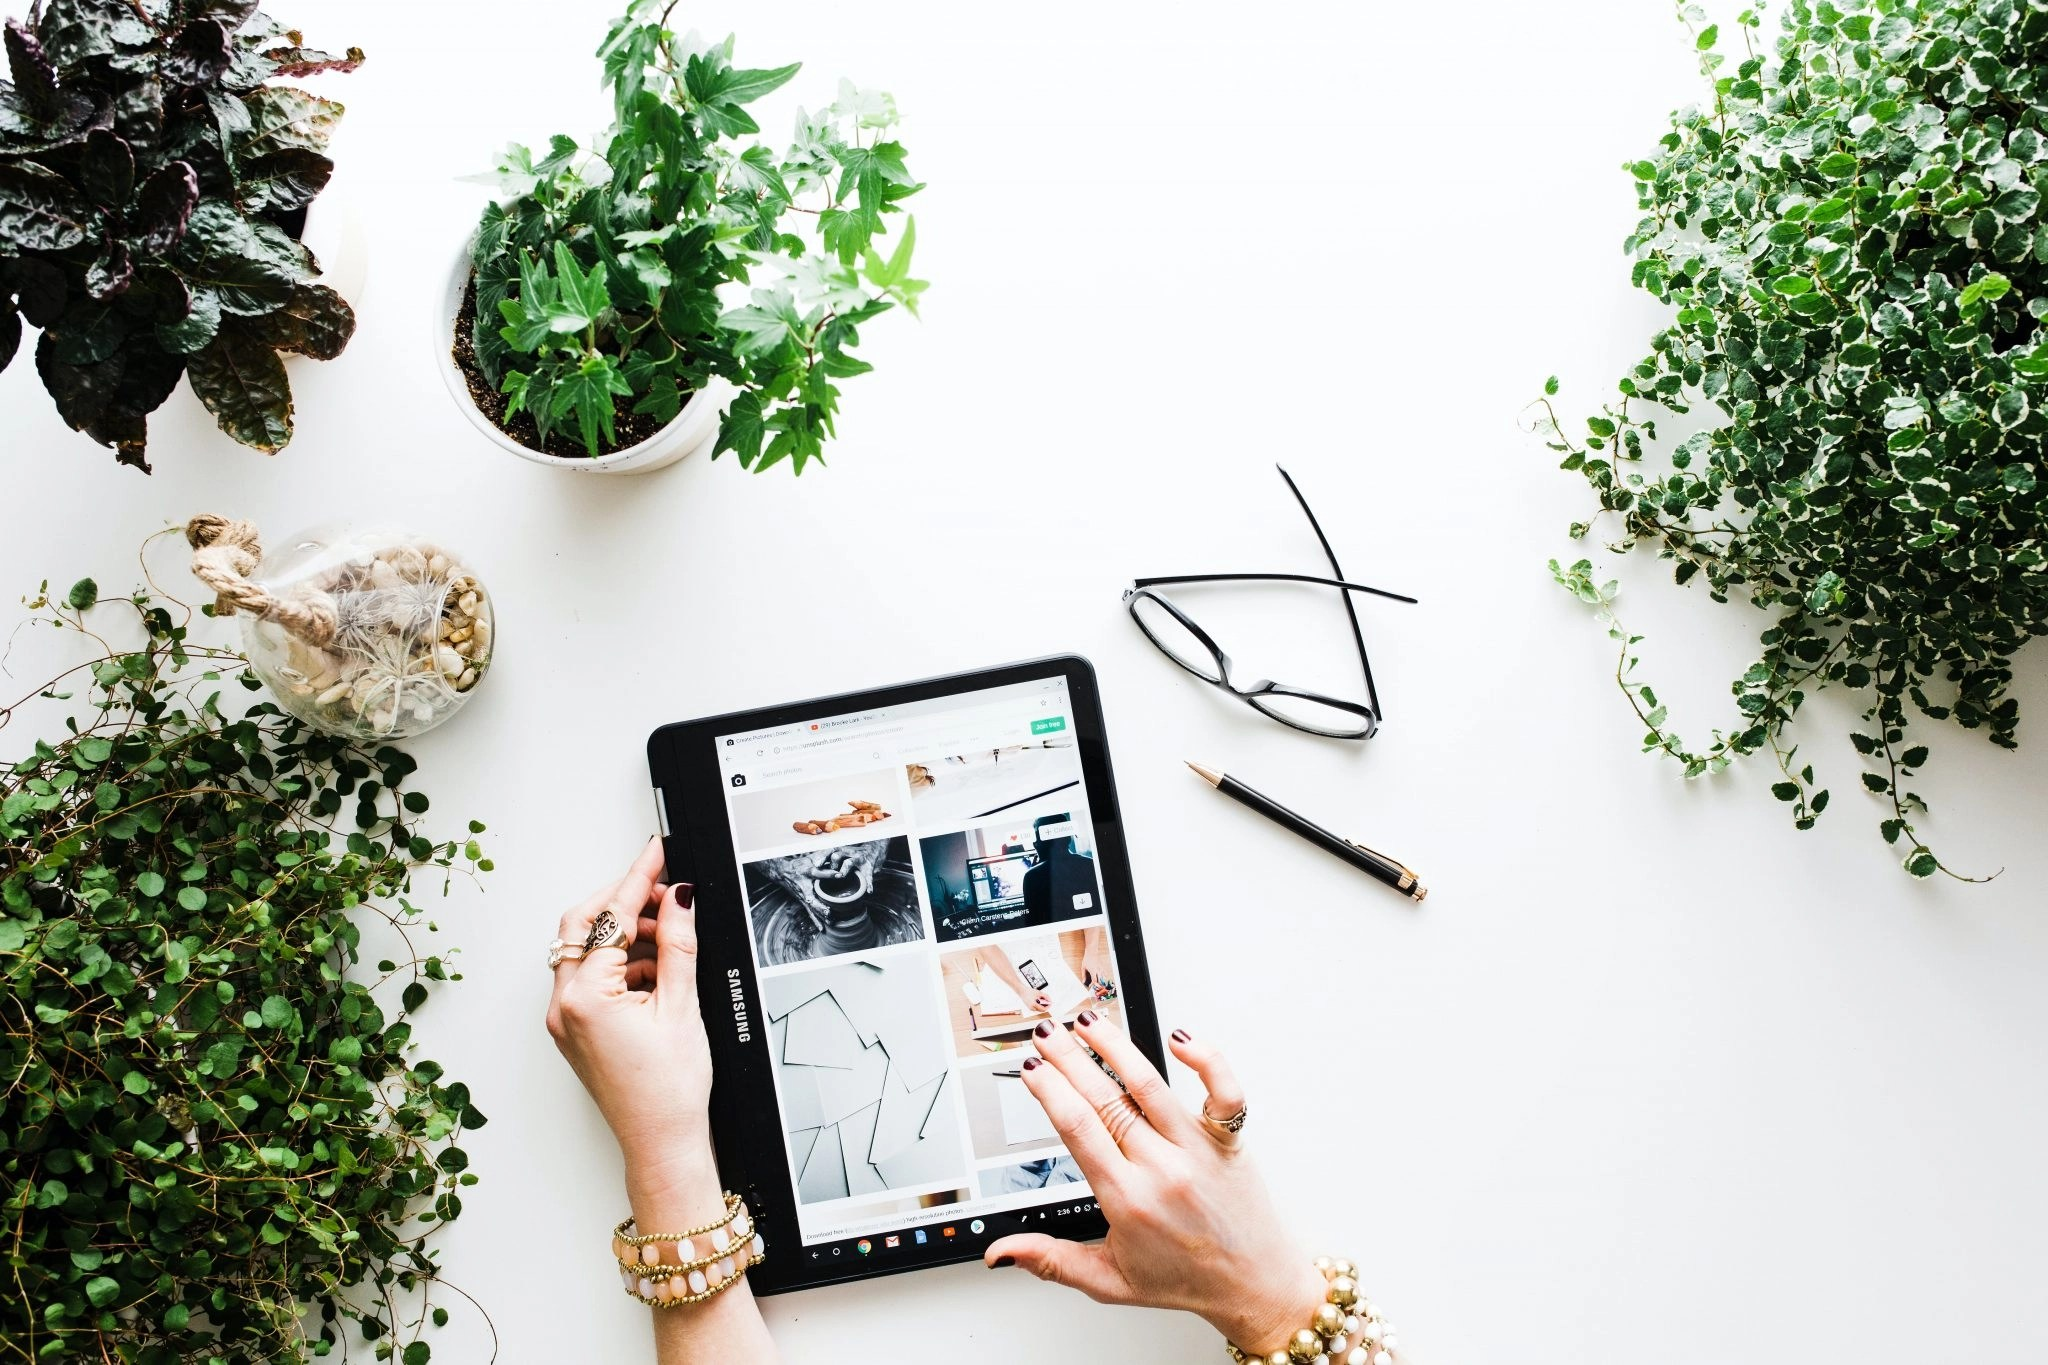 Woman's Hands Selecting Item She Is Selling On Etsy On A Tablet, Surrounded By Plants